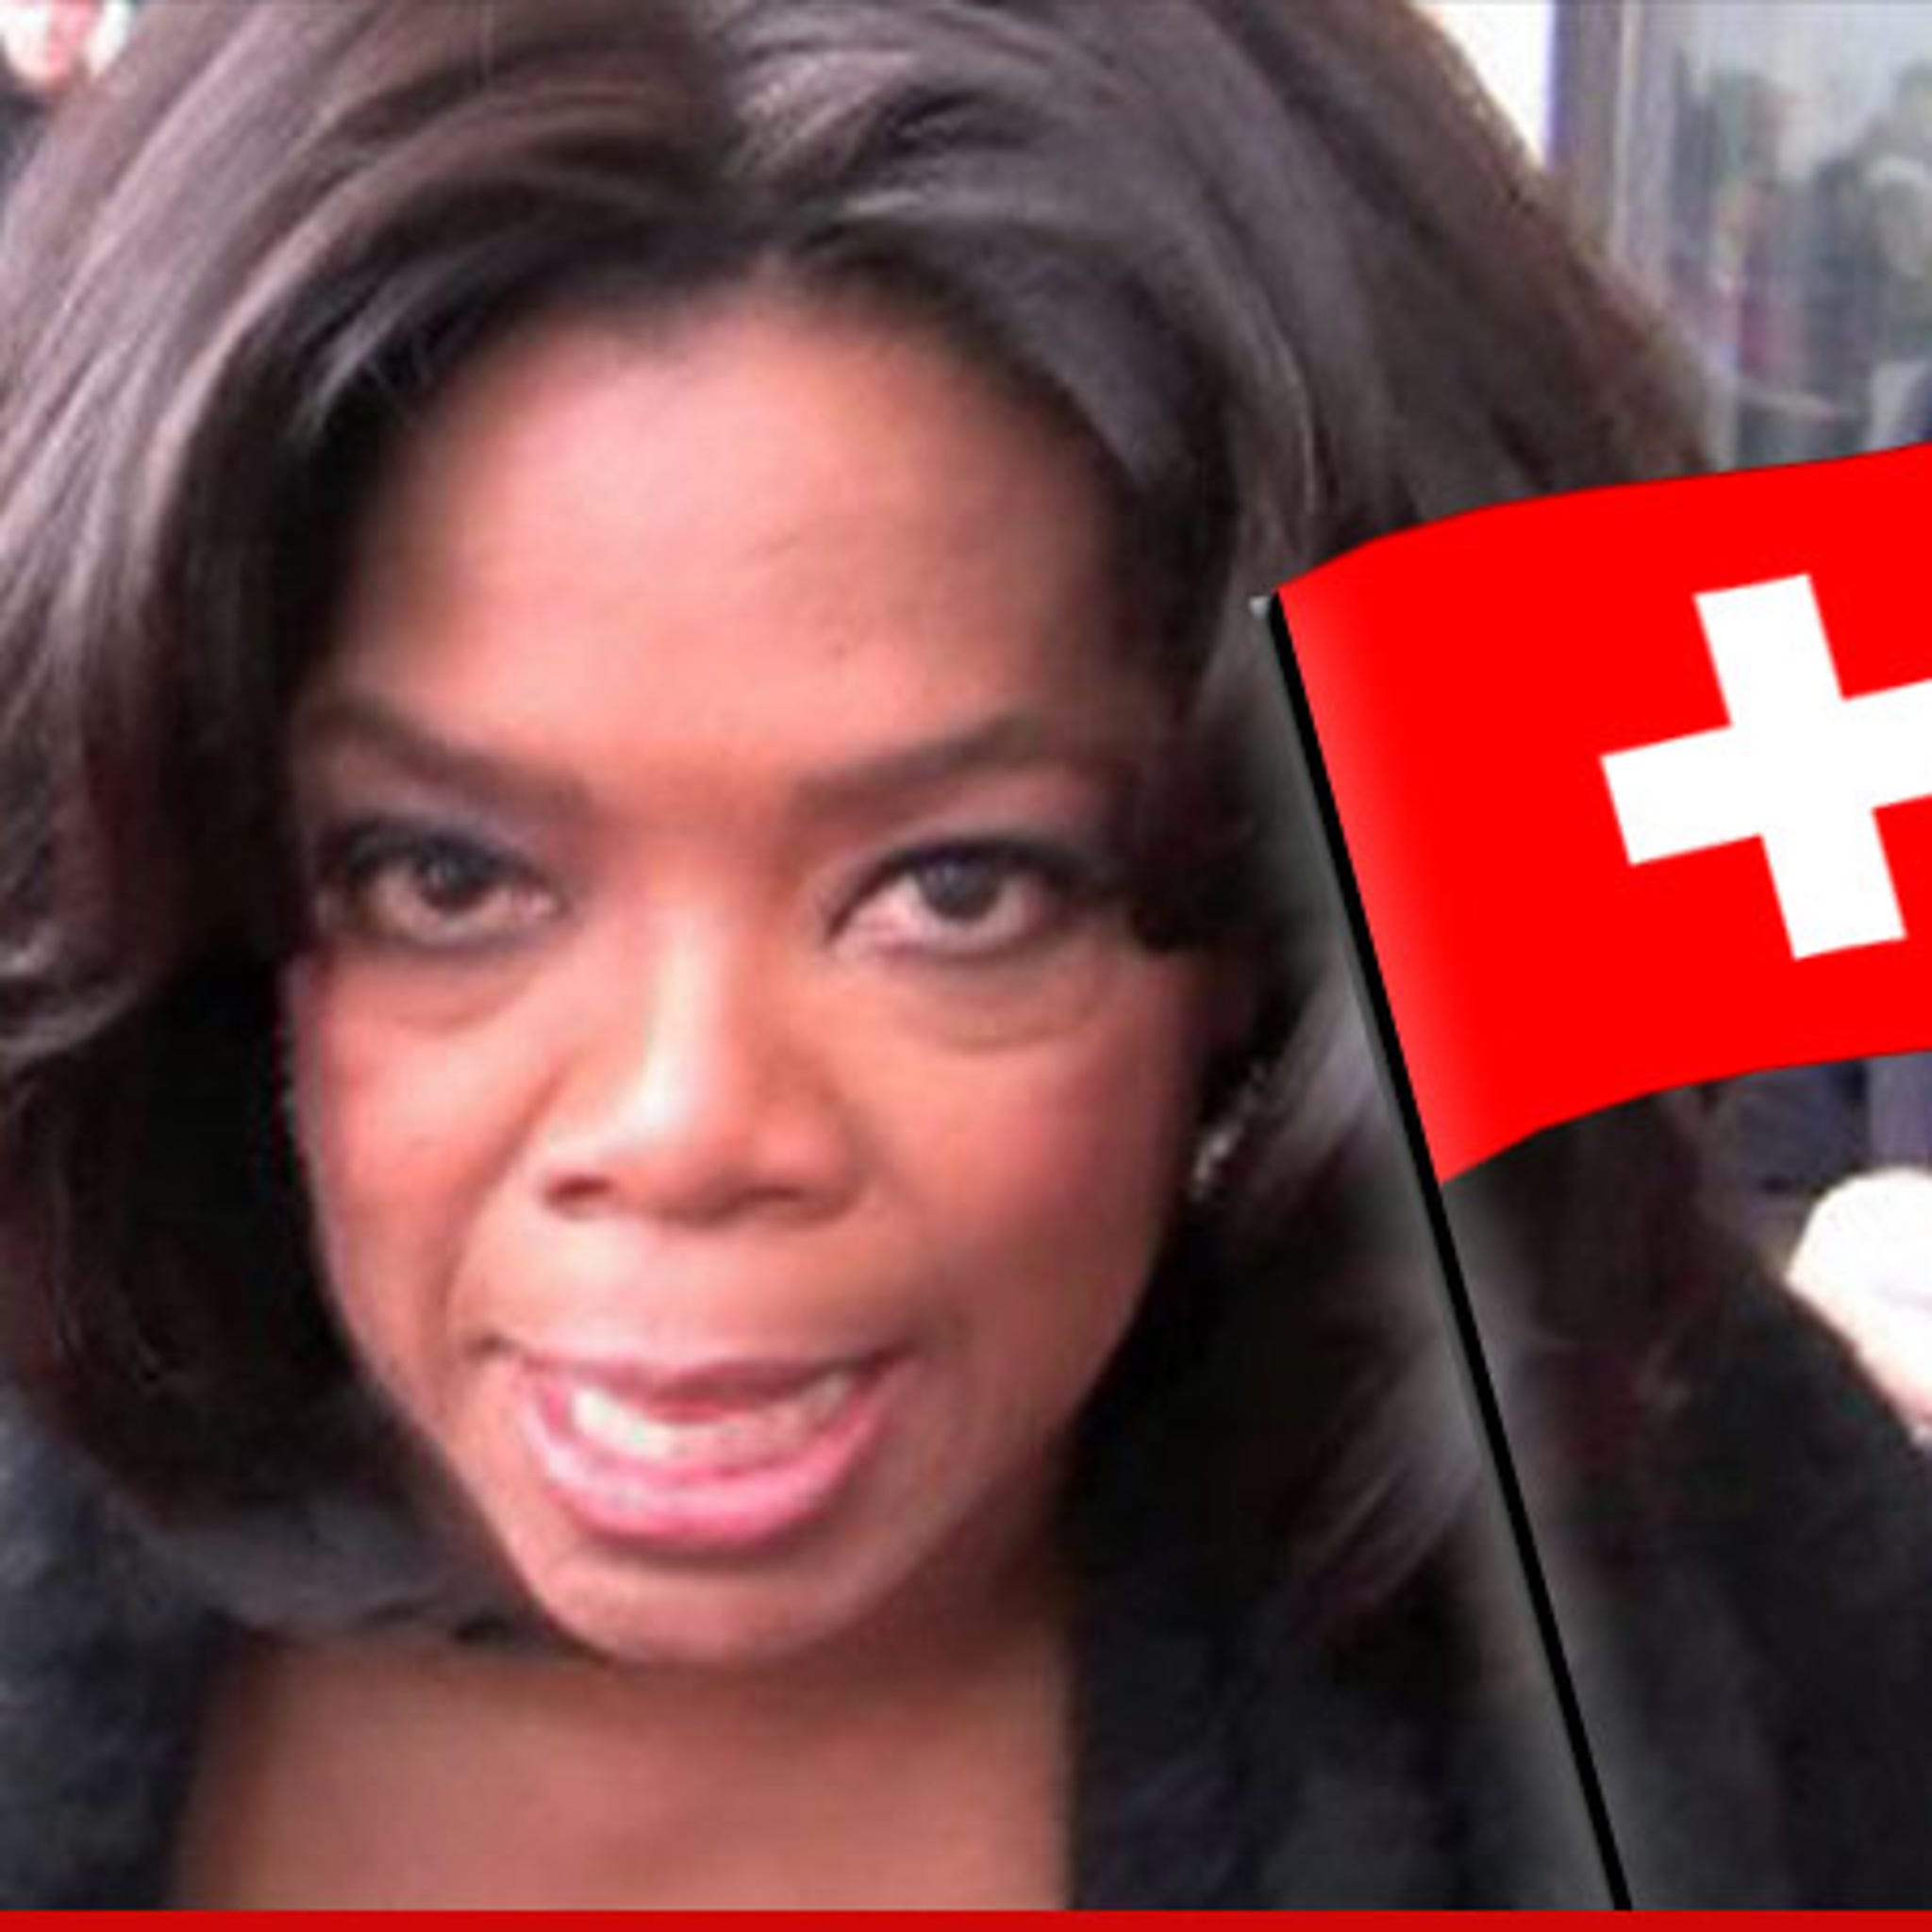 a008227e812 Oprah -- Gets APOLOGY from Switzerland After Racist Incident